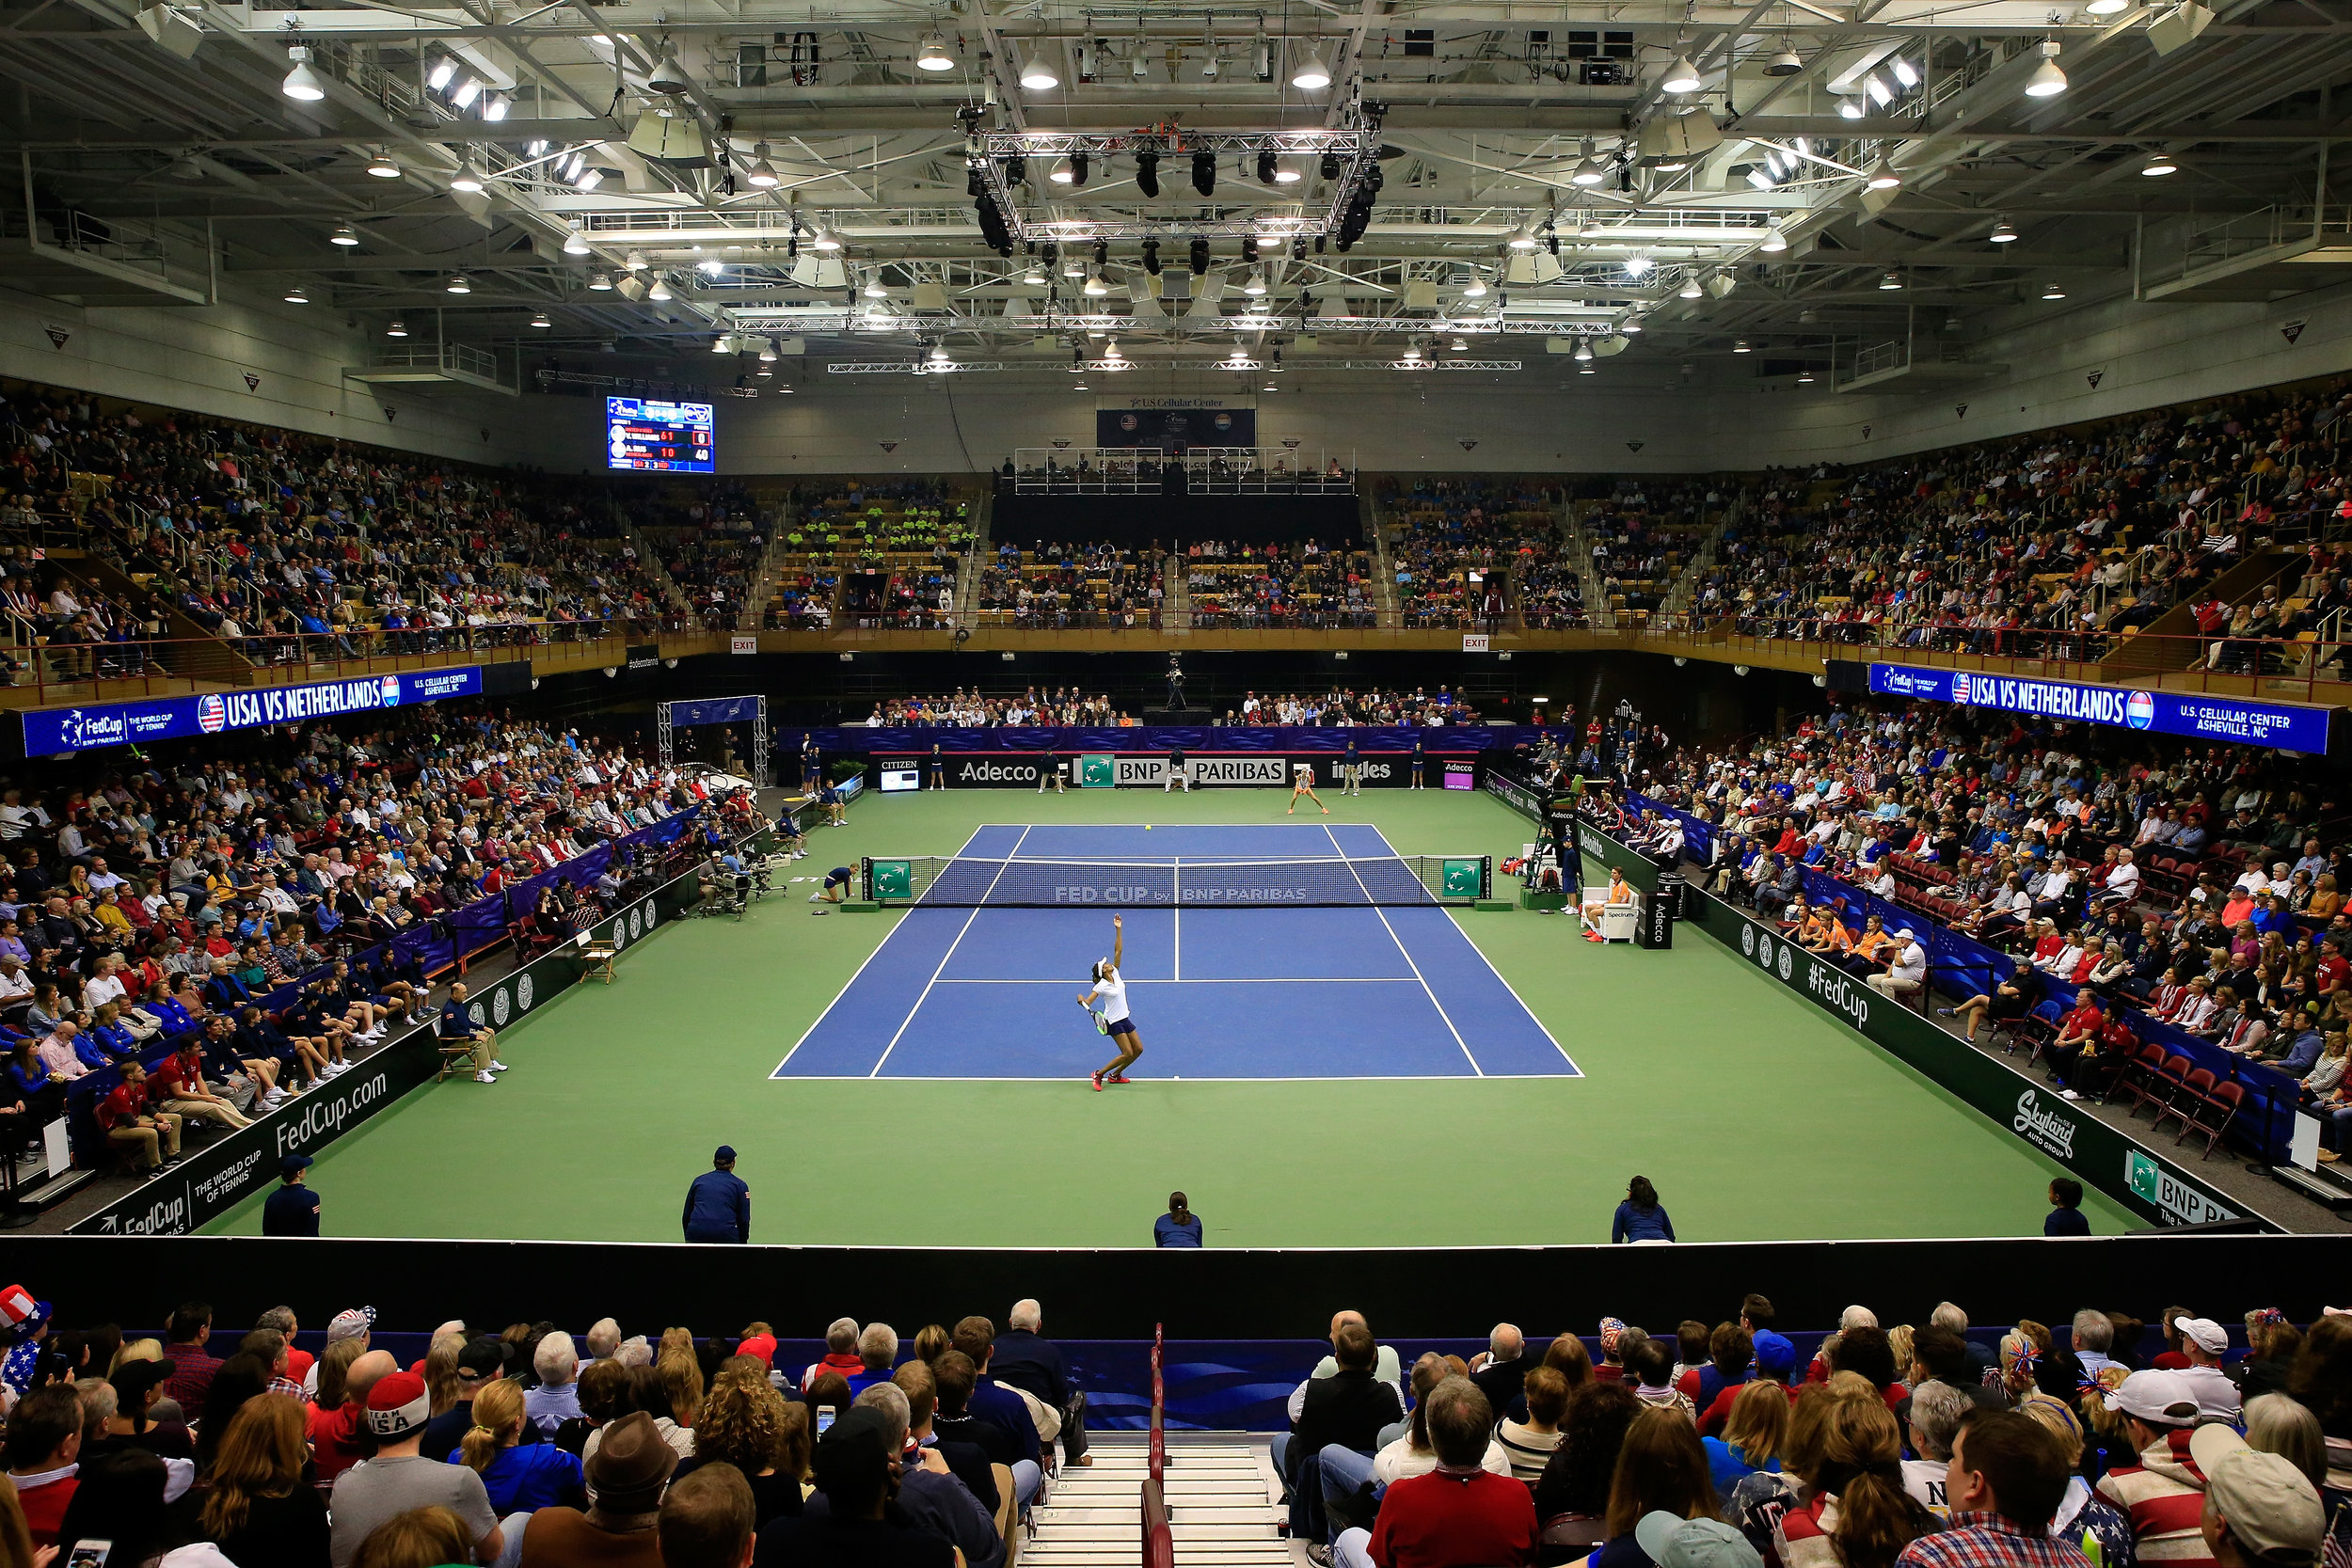 Asheville Fed Cup Arena View.jpg